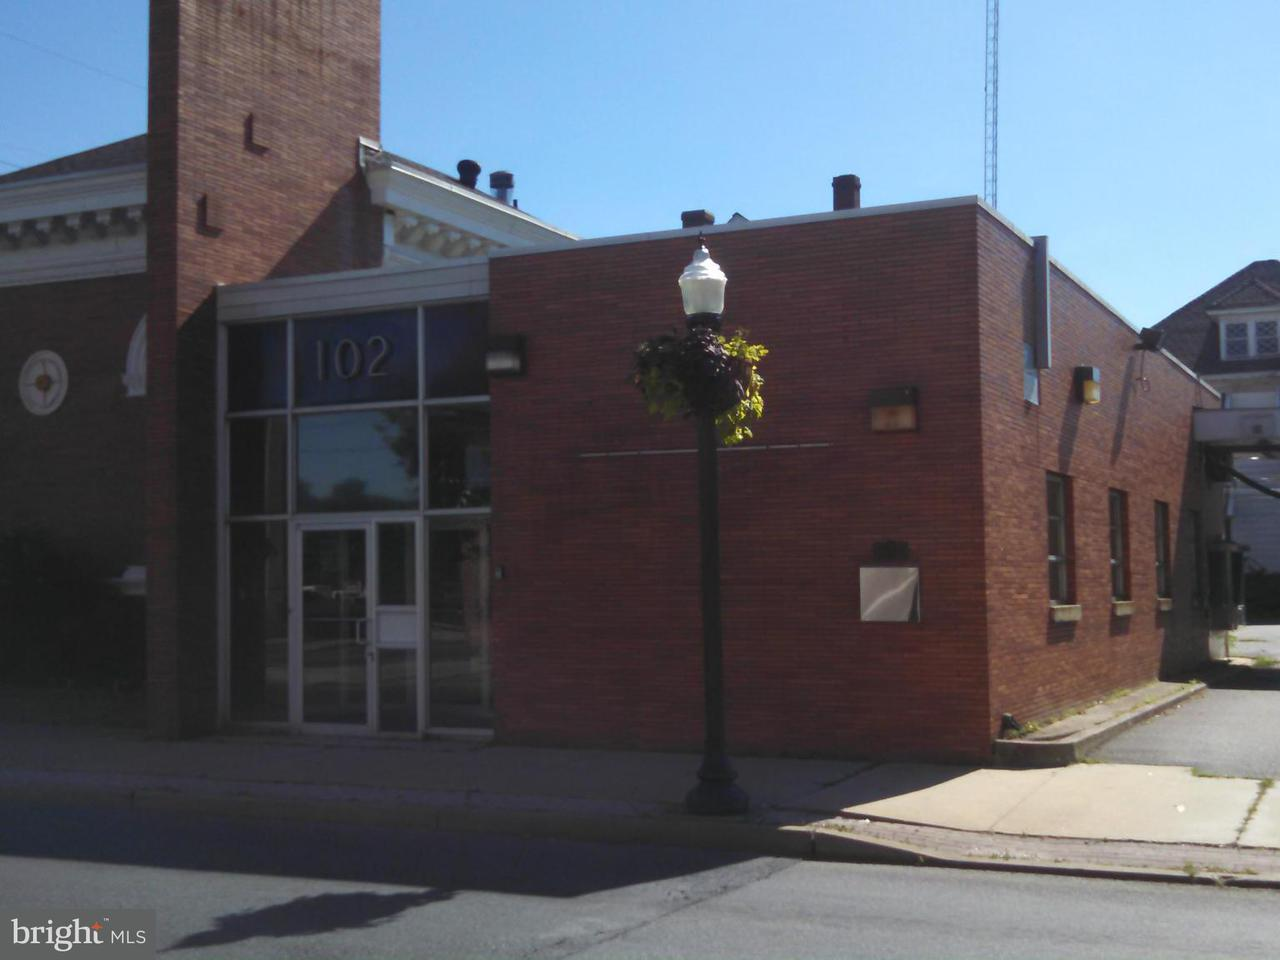 Commercial for Sale at 102 Main St Federalsburg, Maryland 21632 United States